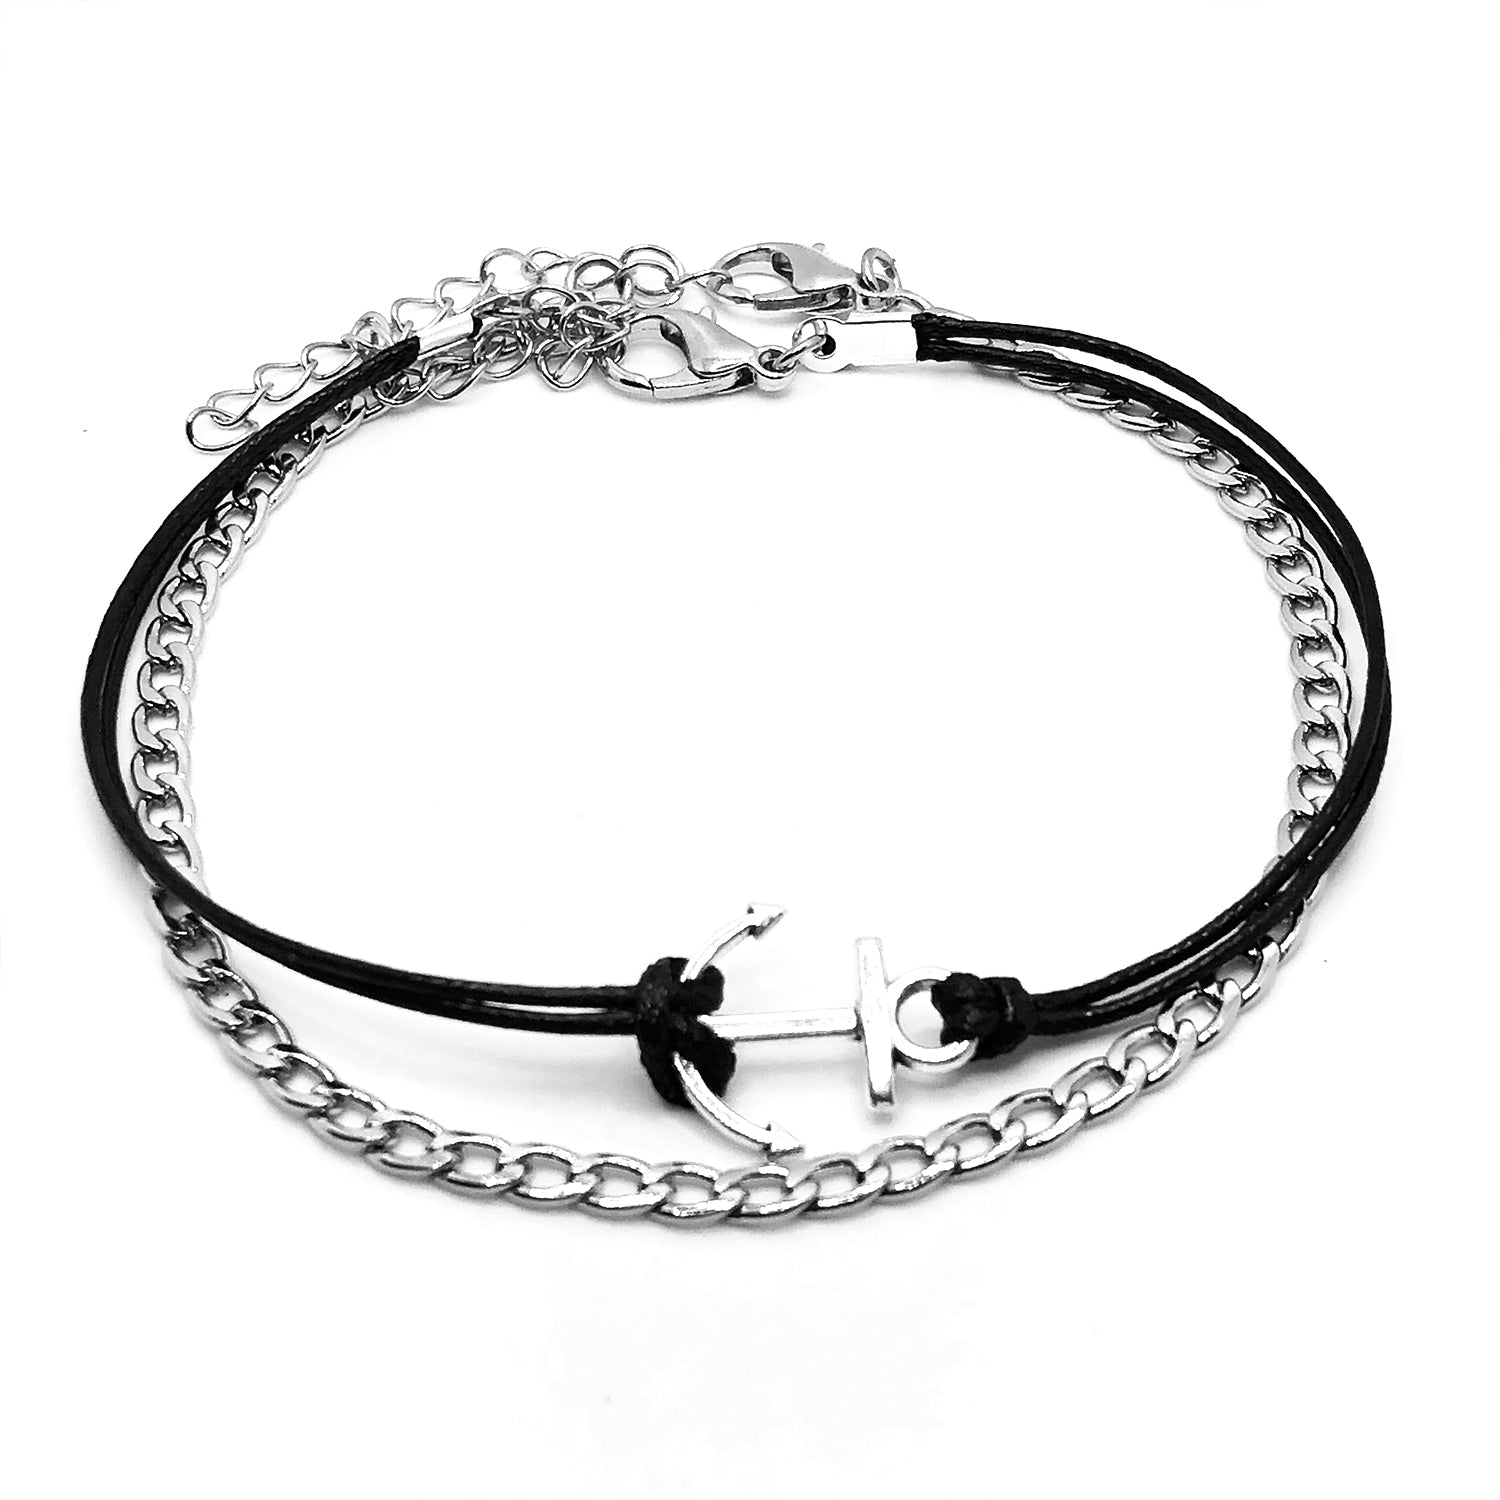 Anchor & Chain Anklet Set